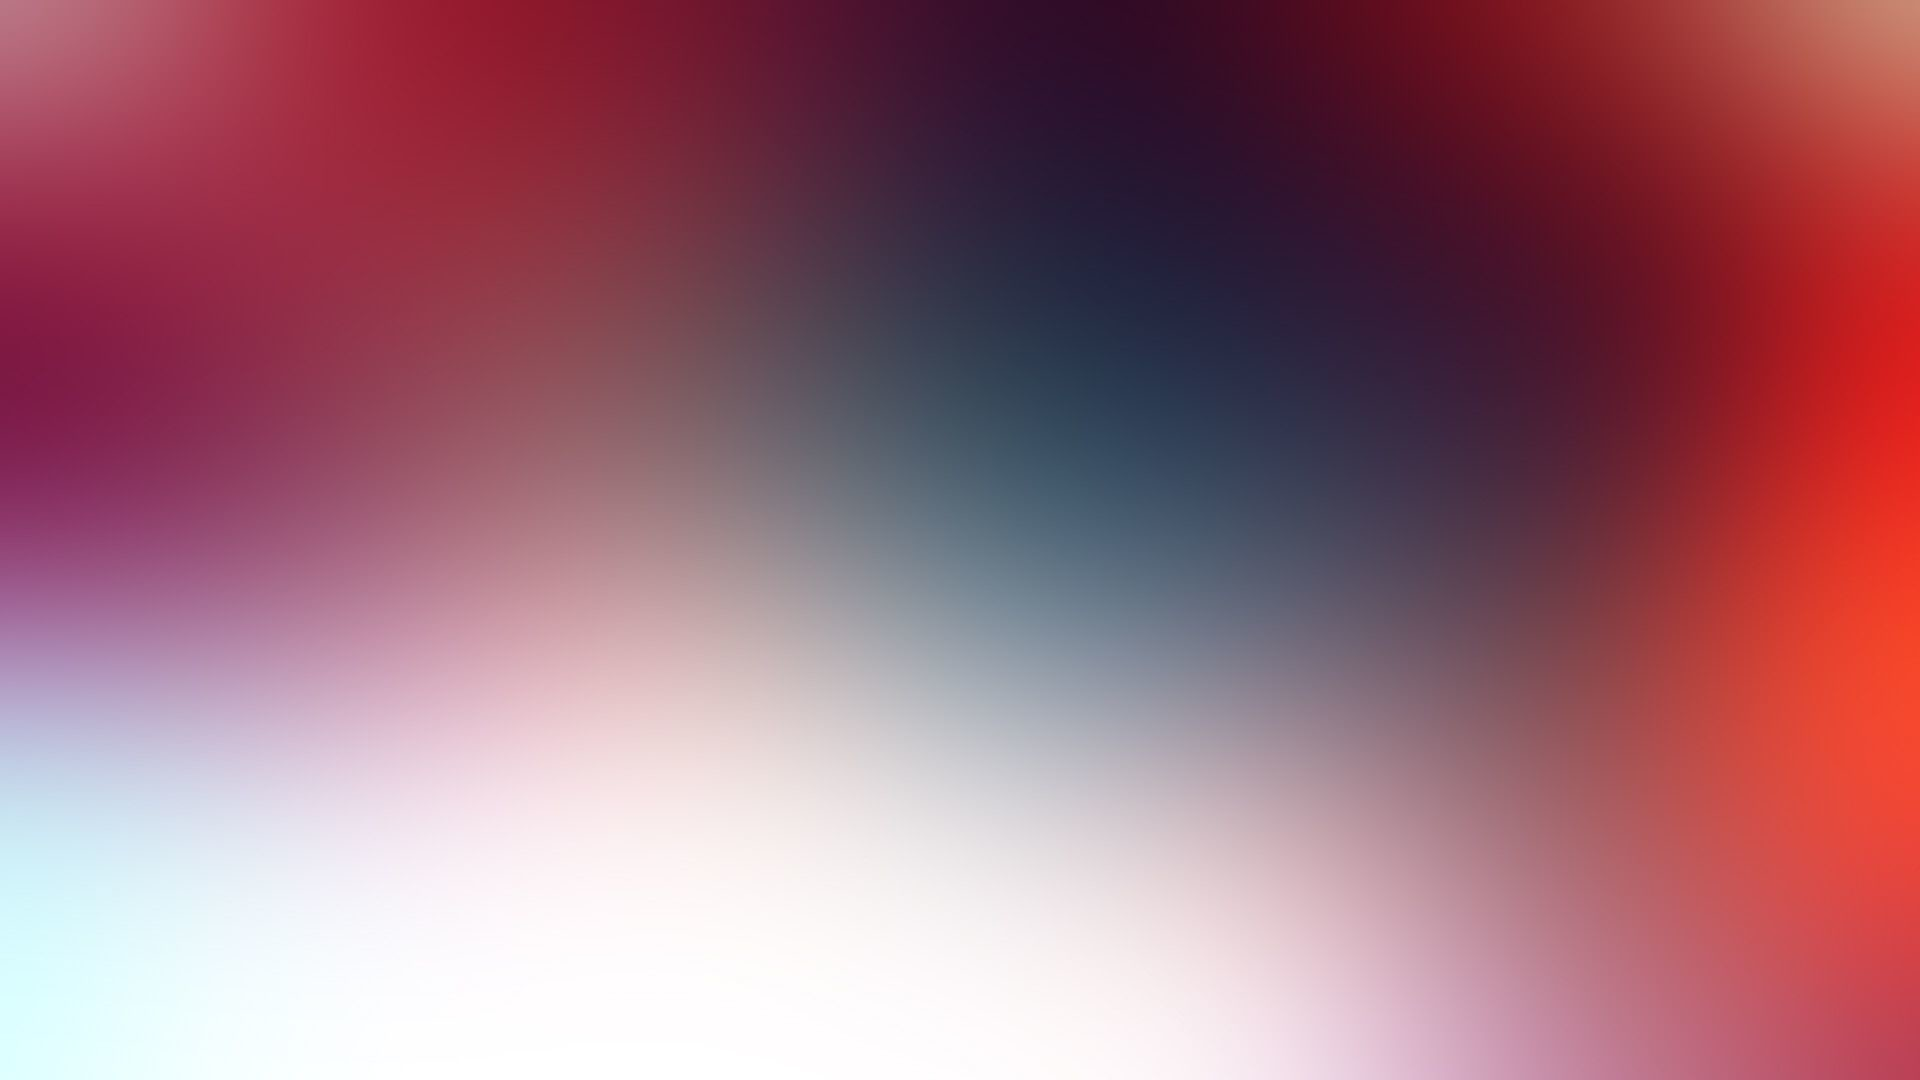 Download Wallpaper Spots, Gray, Red, Blue, Abstract Full .